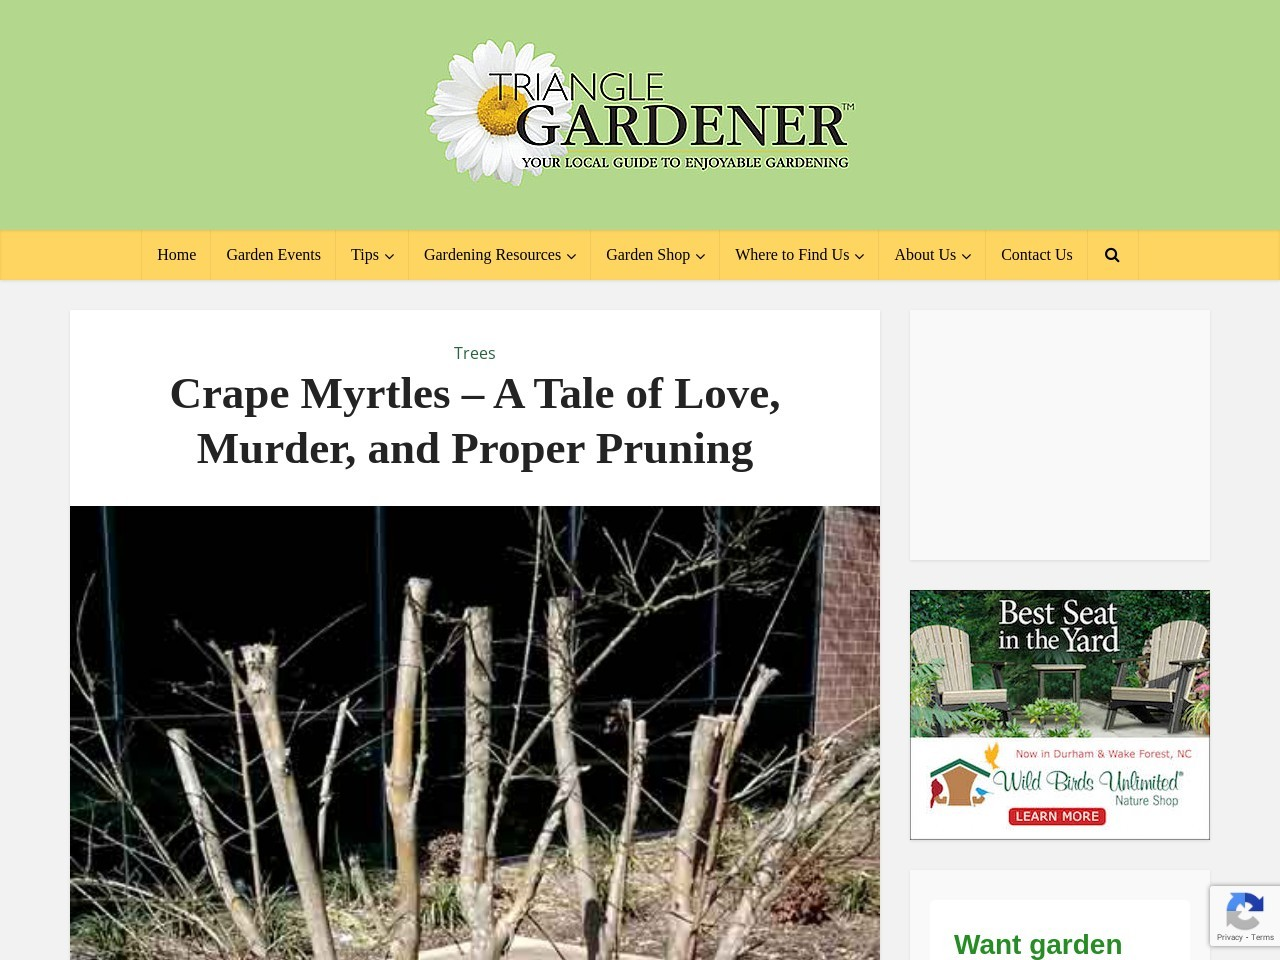 Crape Myrtles – A Tale of Love, Murder, and Proper Pruning